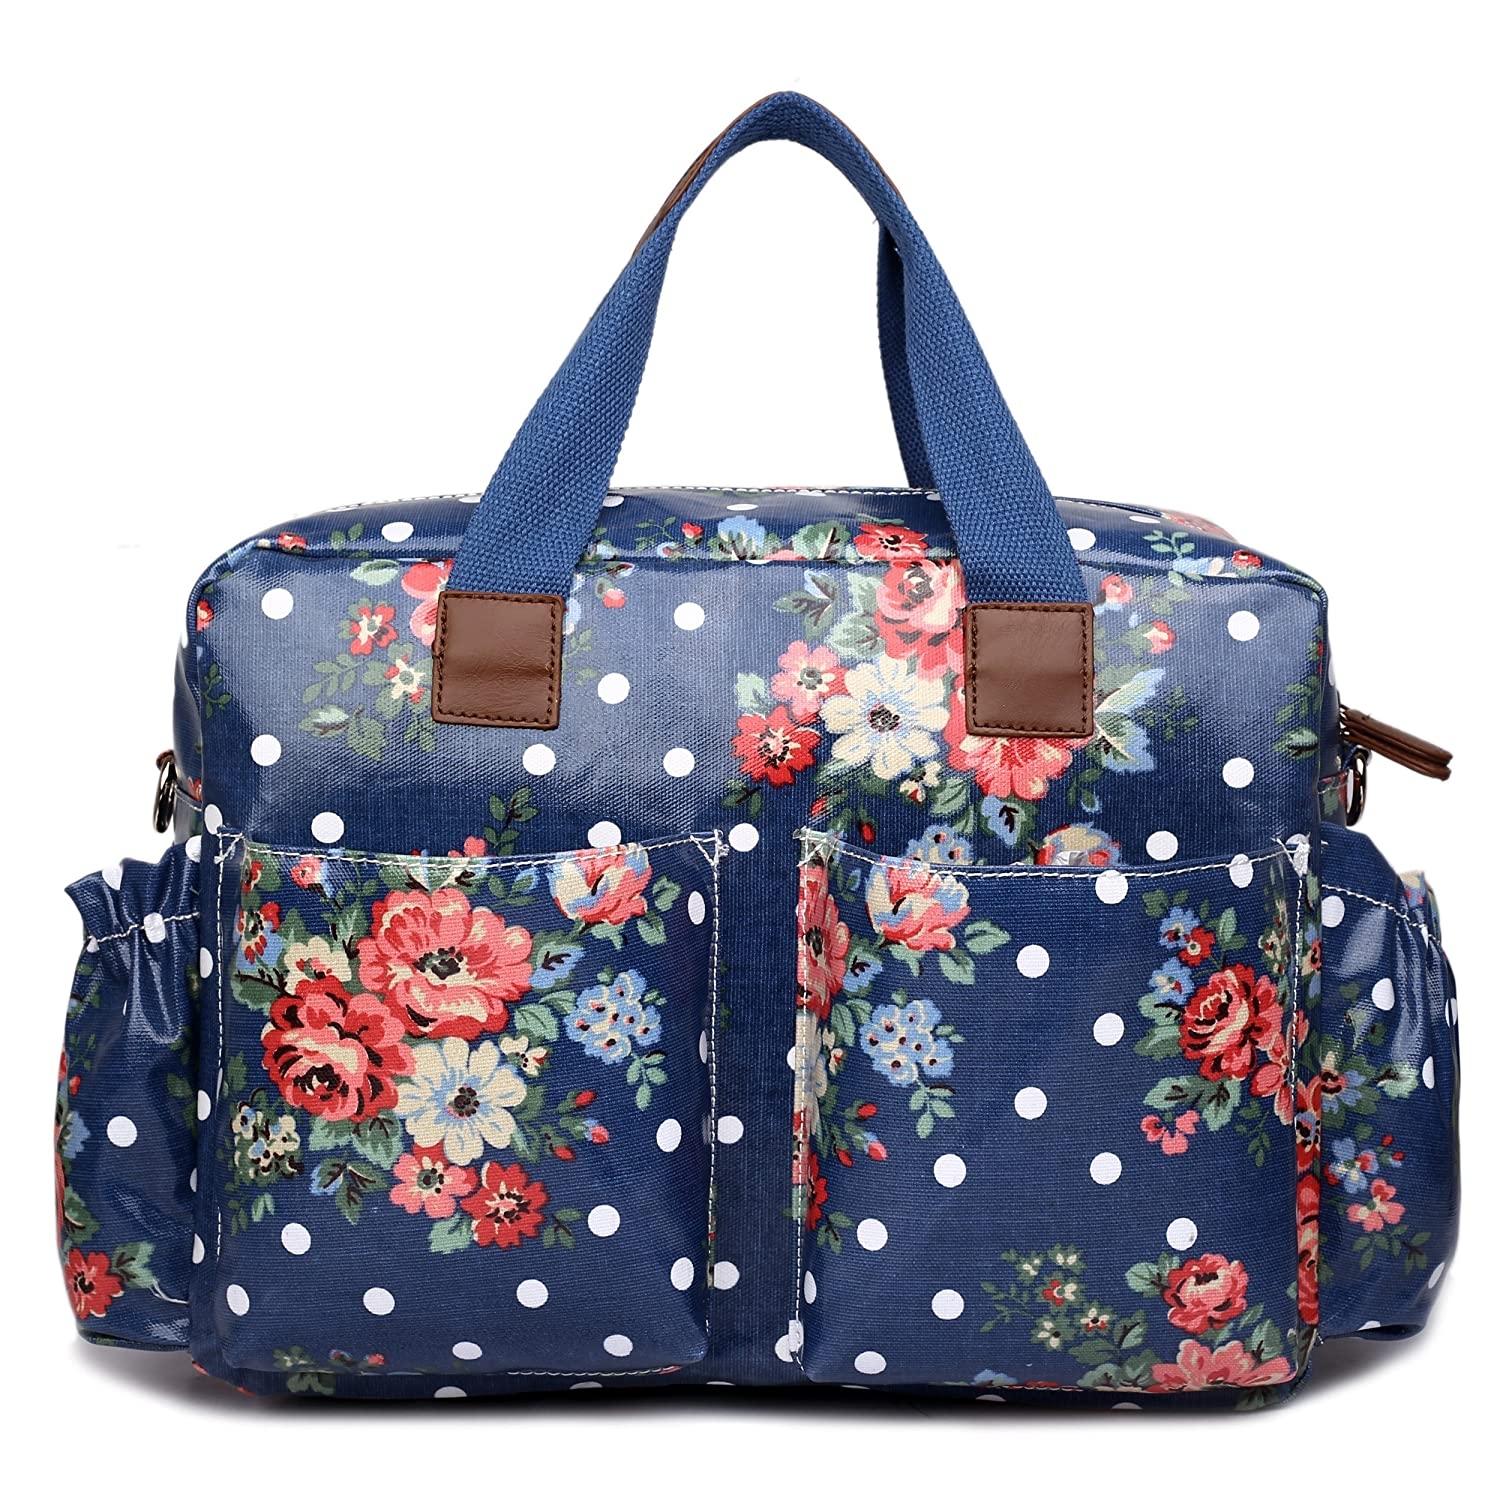 Blue Miss Lulu 4 Piece Flower Polka Dot Baby Nappy Changing Bag Set